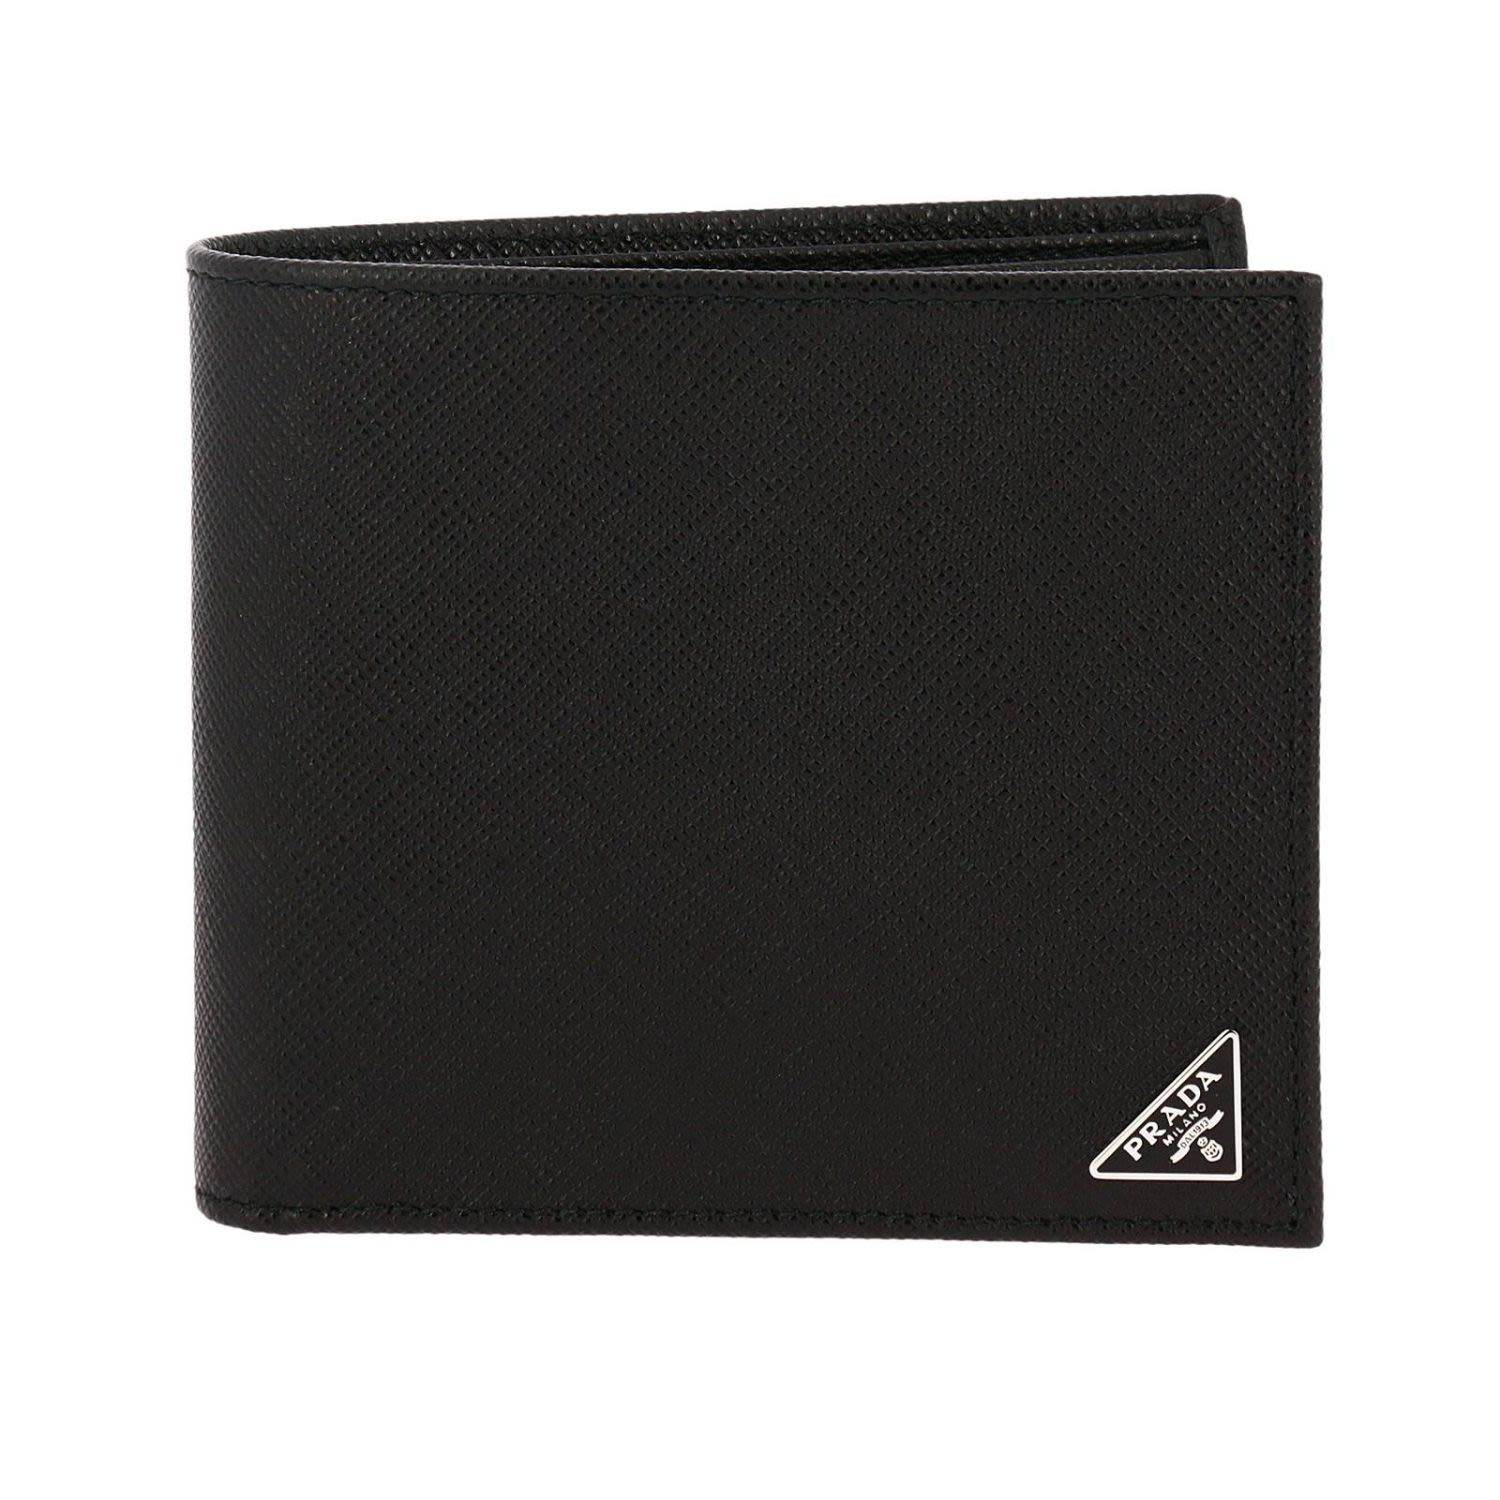 Wallet Wallet Men Prada